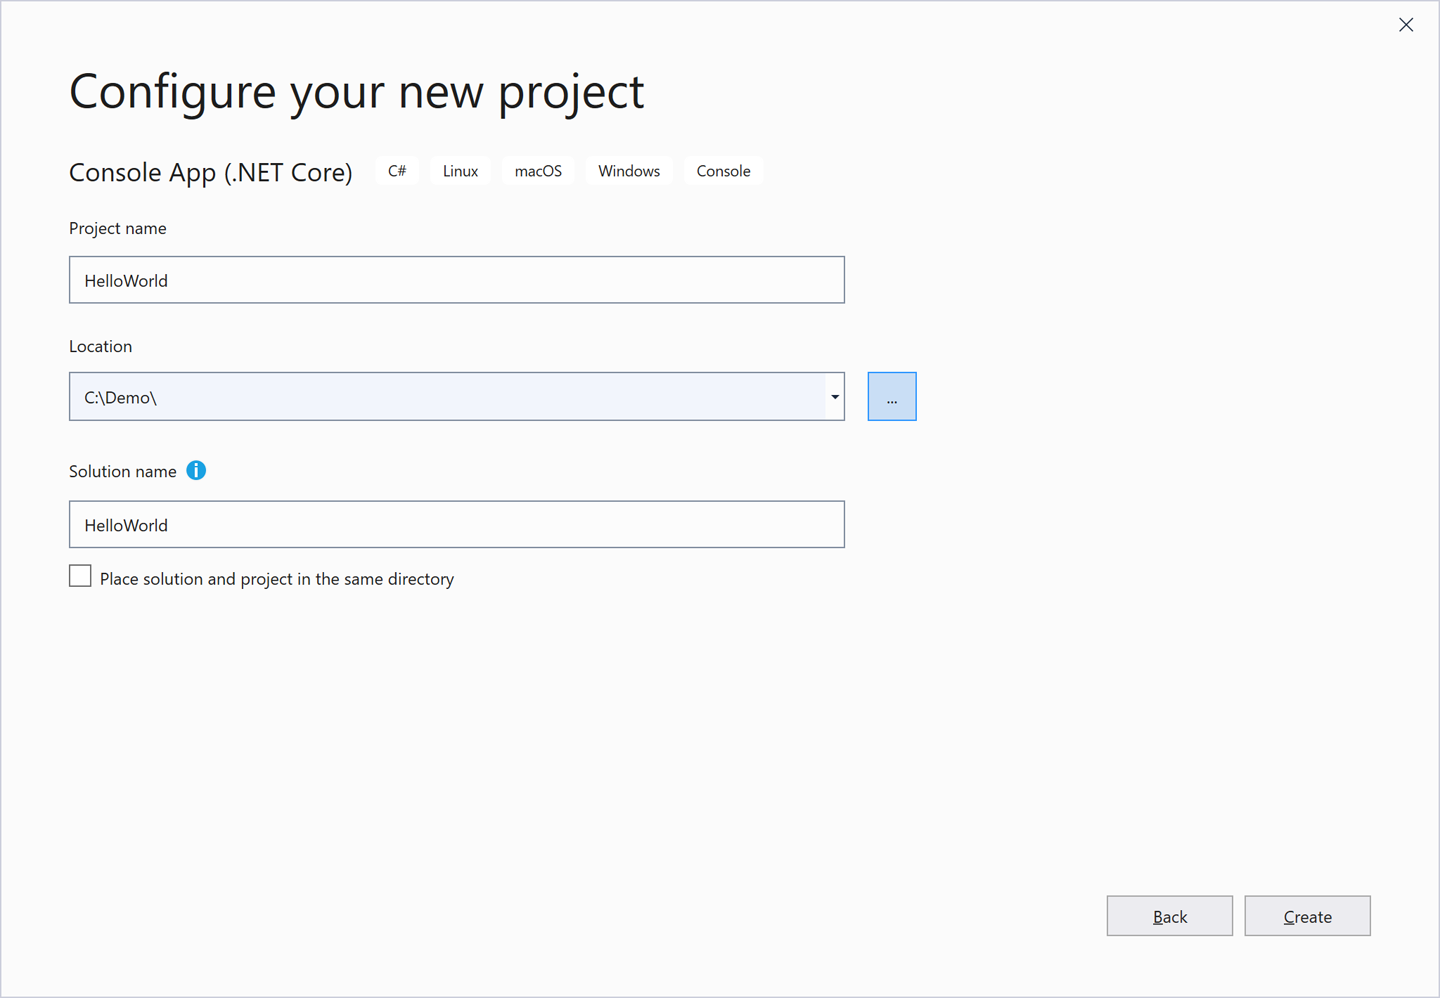 The Configure your new project dialog